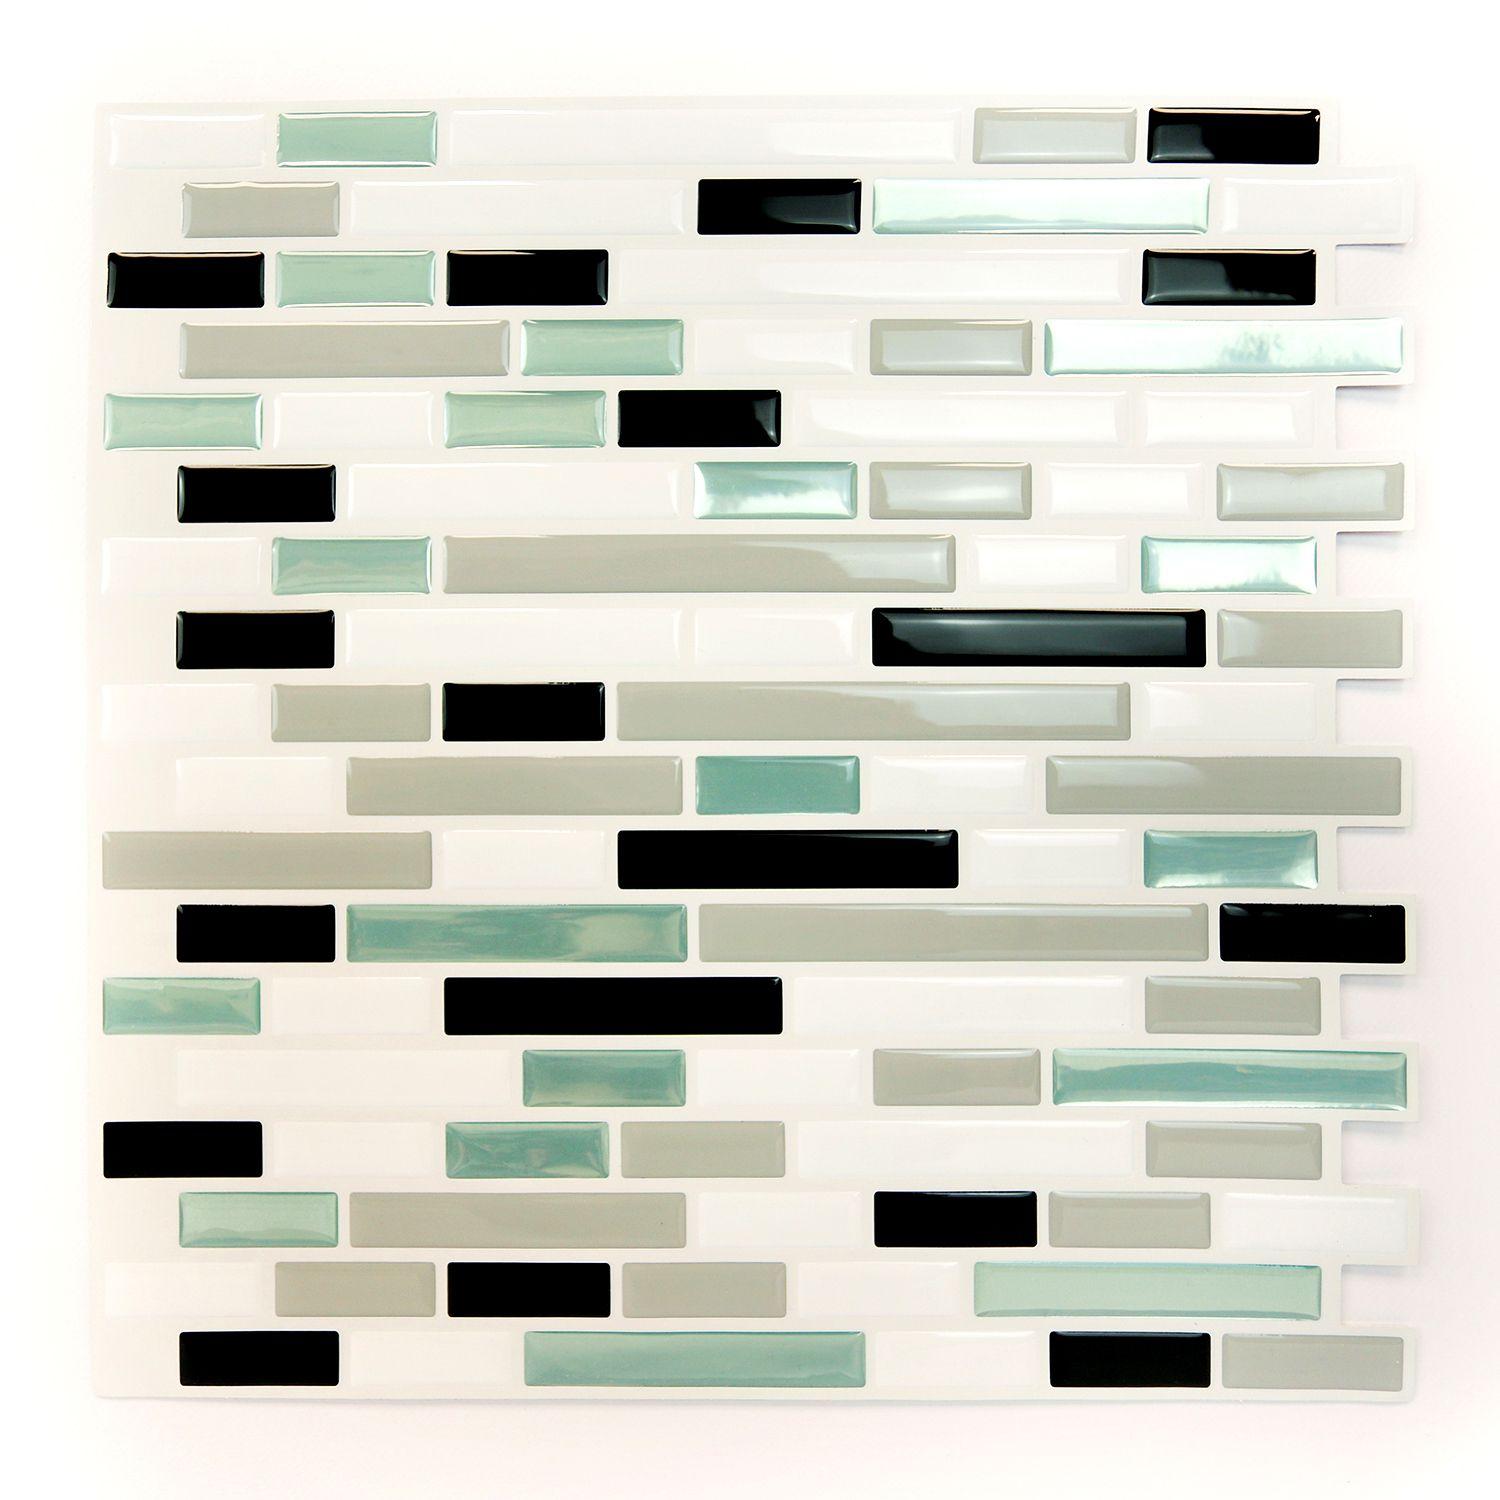 Metalic Turquoise Mosaic Glossy 3D Metro Sticker Tiles 30 x 30cm Premium Wall Splashbacks Mosaics, Self adhesive, Glass Effect, Peel and Stick, Bathroom Decoration, DIY, Kitchen D+®cor